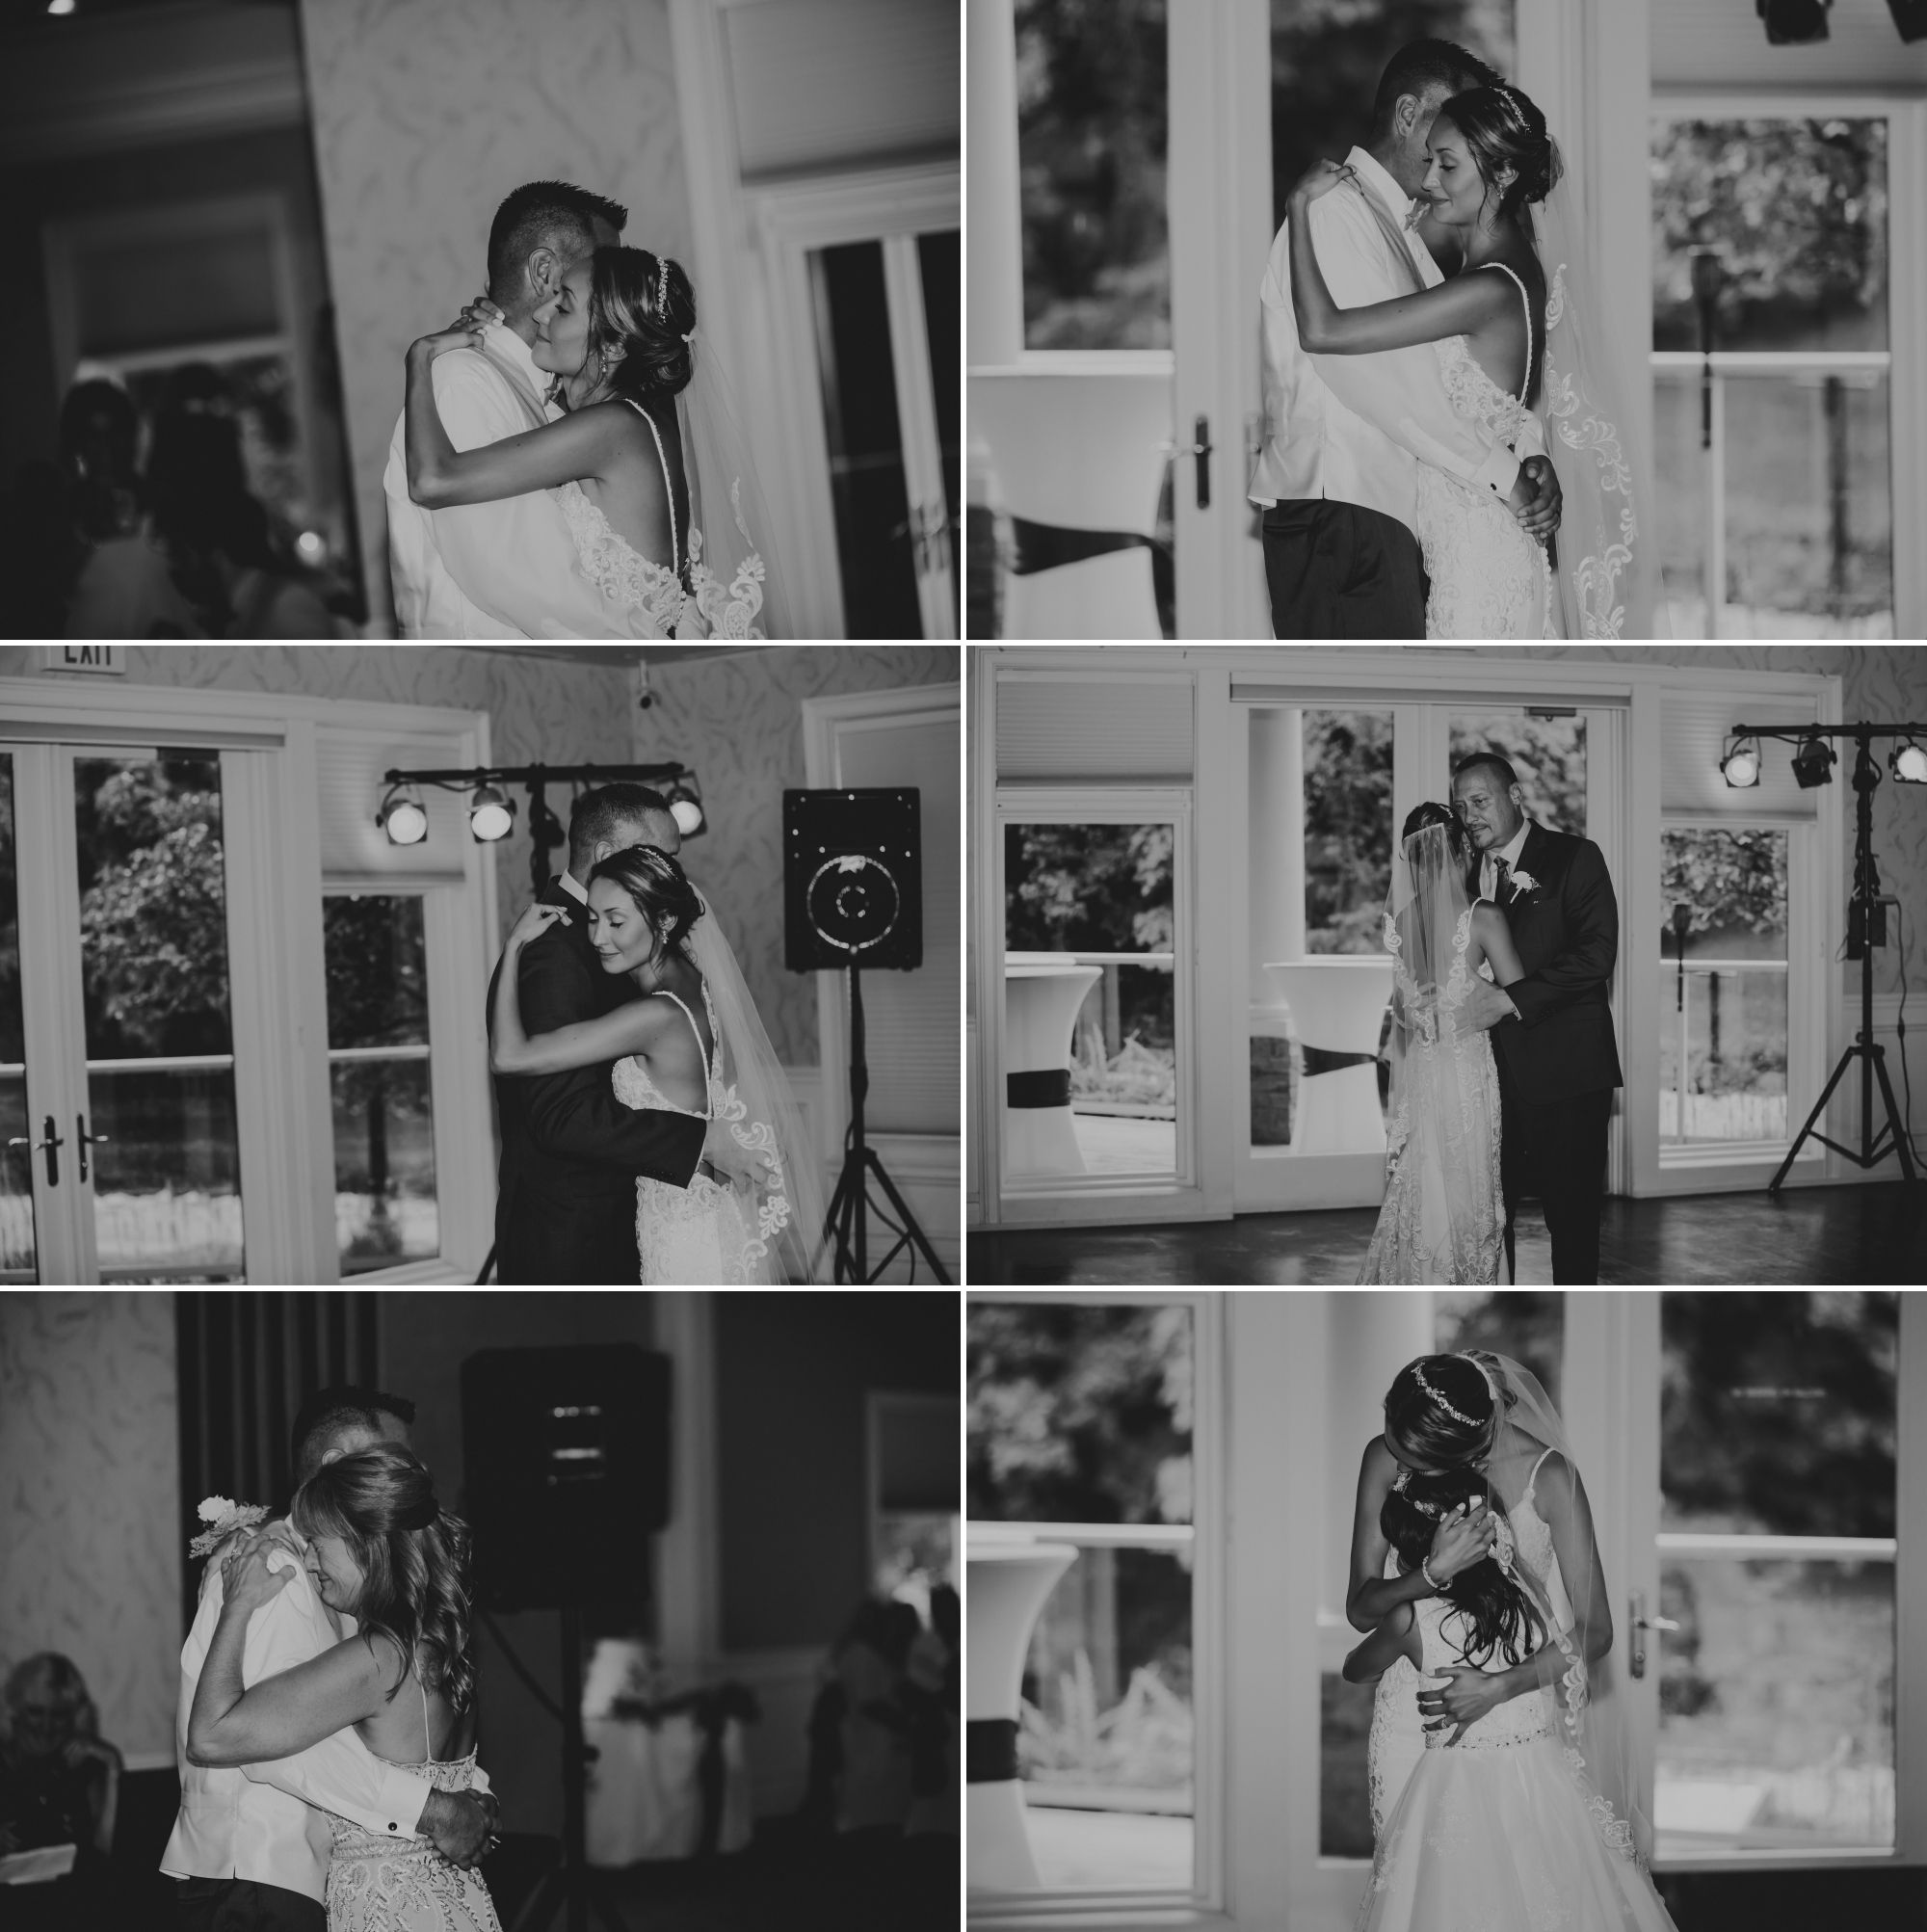 Black and white photo collage of the special dances at the wedding reception.